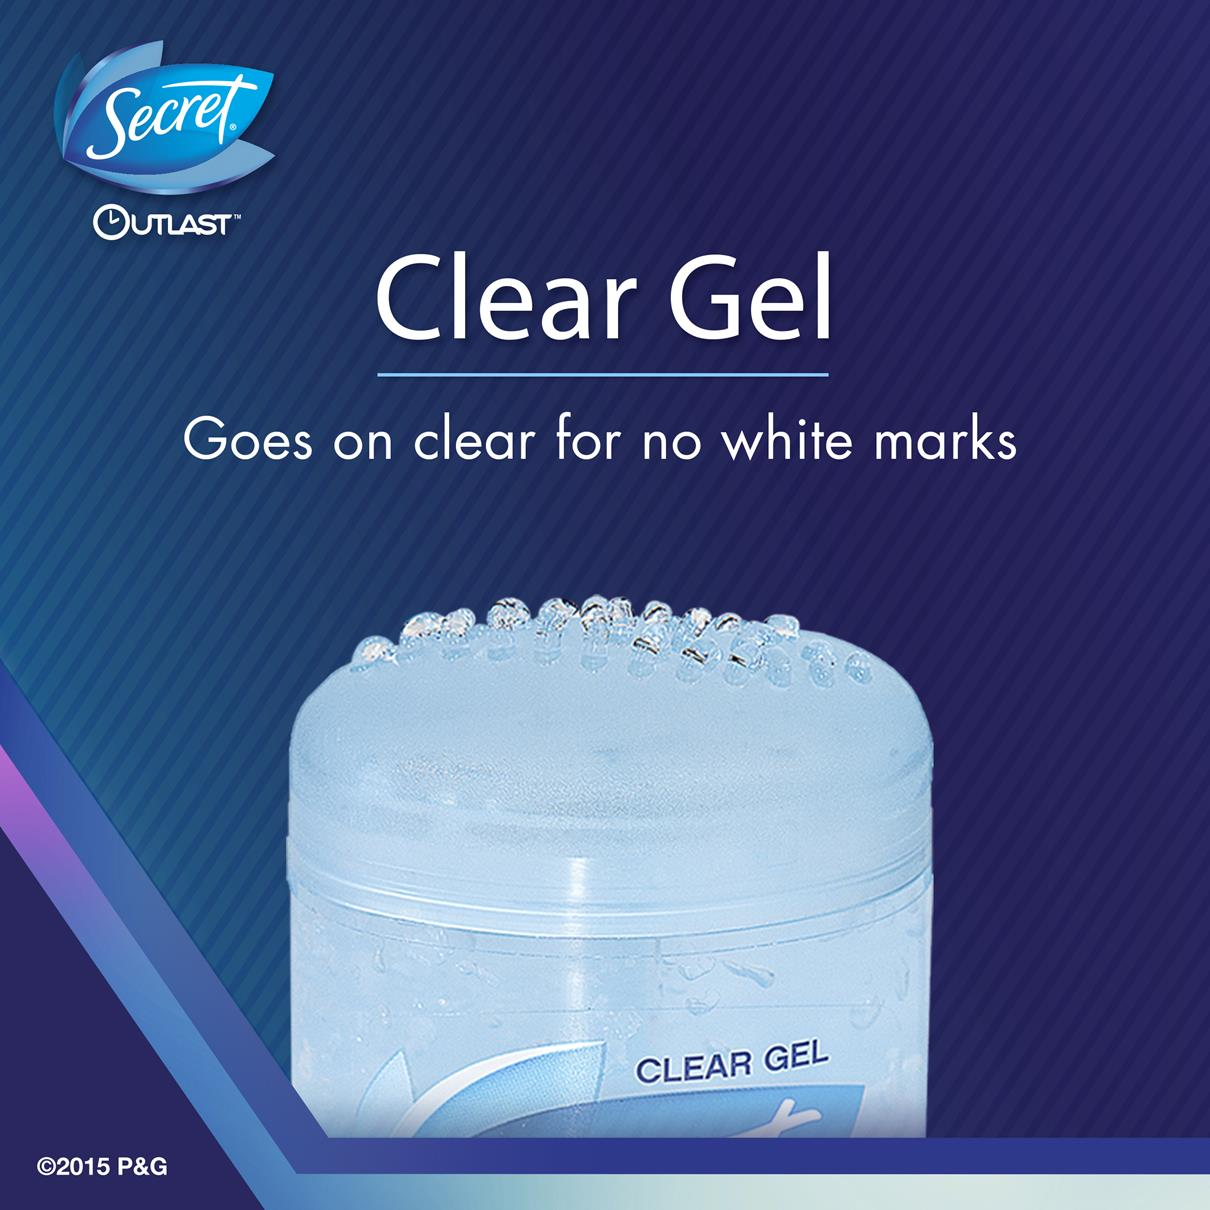 Secret Deodorant Outlast Clear Gel Complete Clean 73g